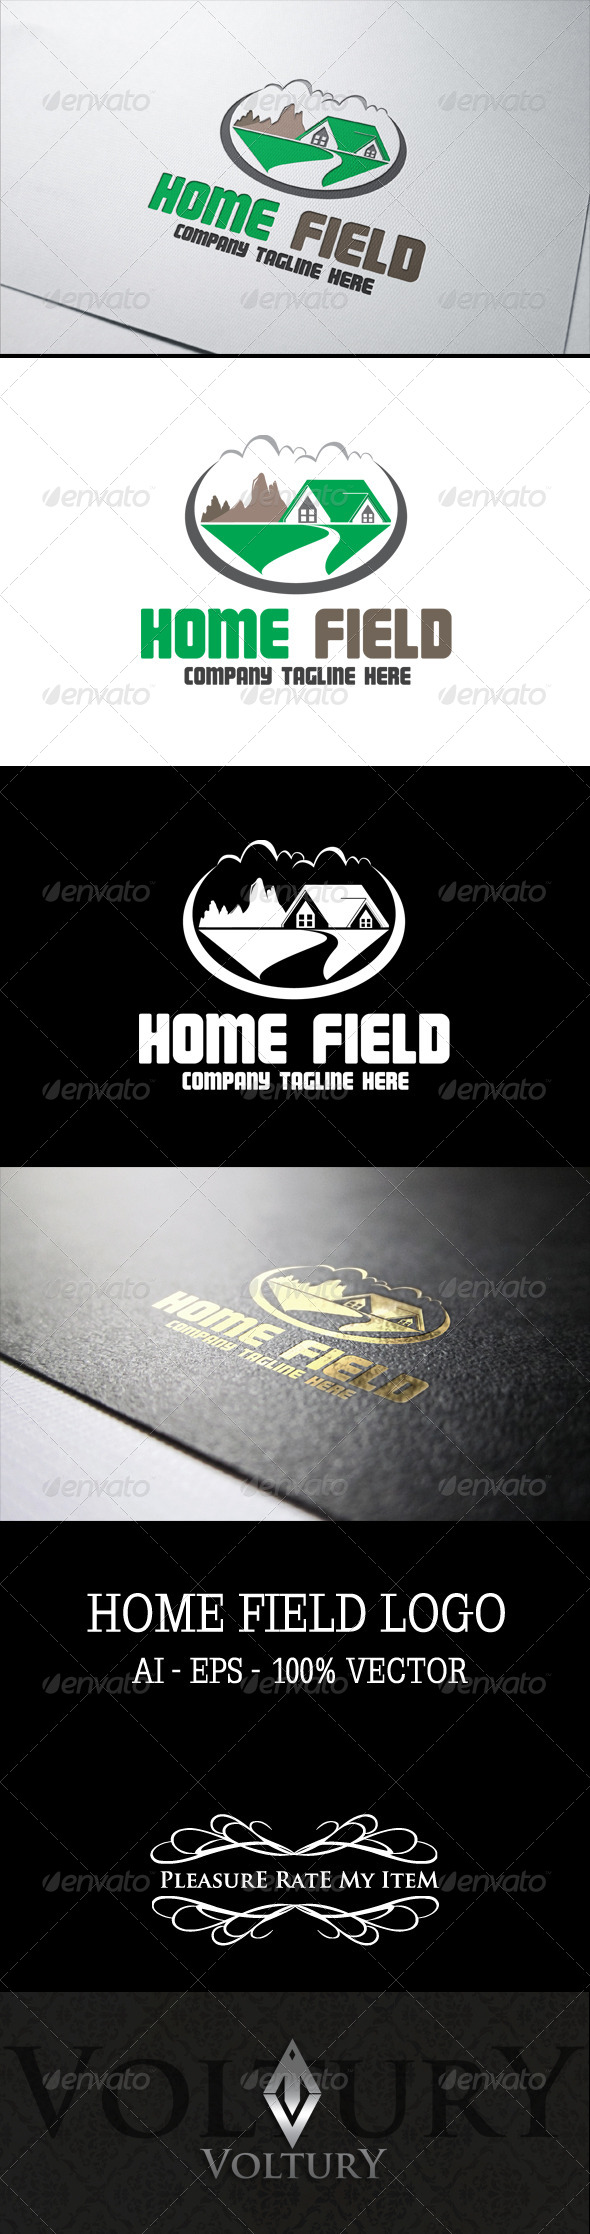 GraphicRiver Home Field Logo 7522151